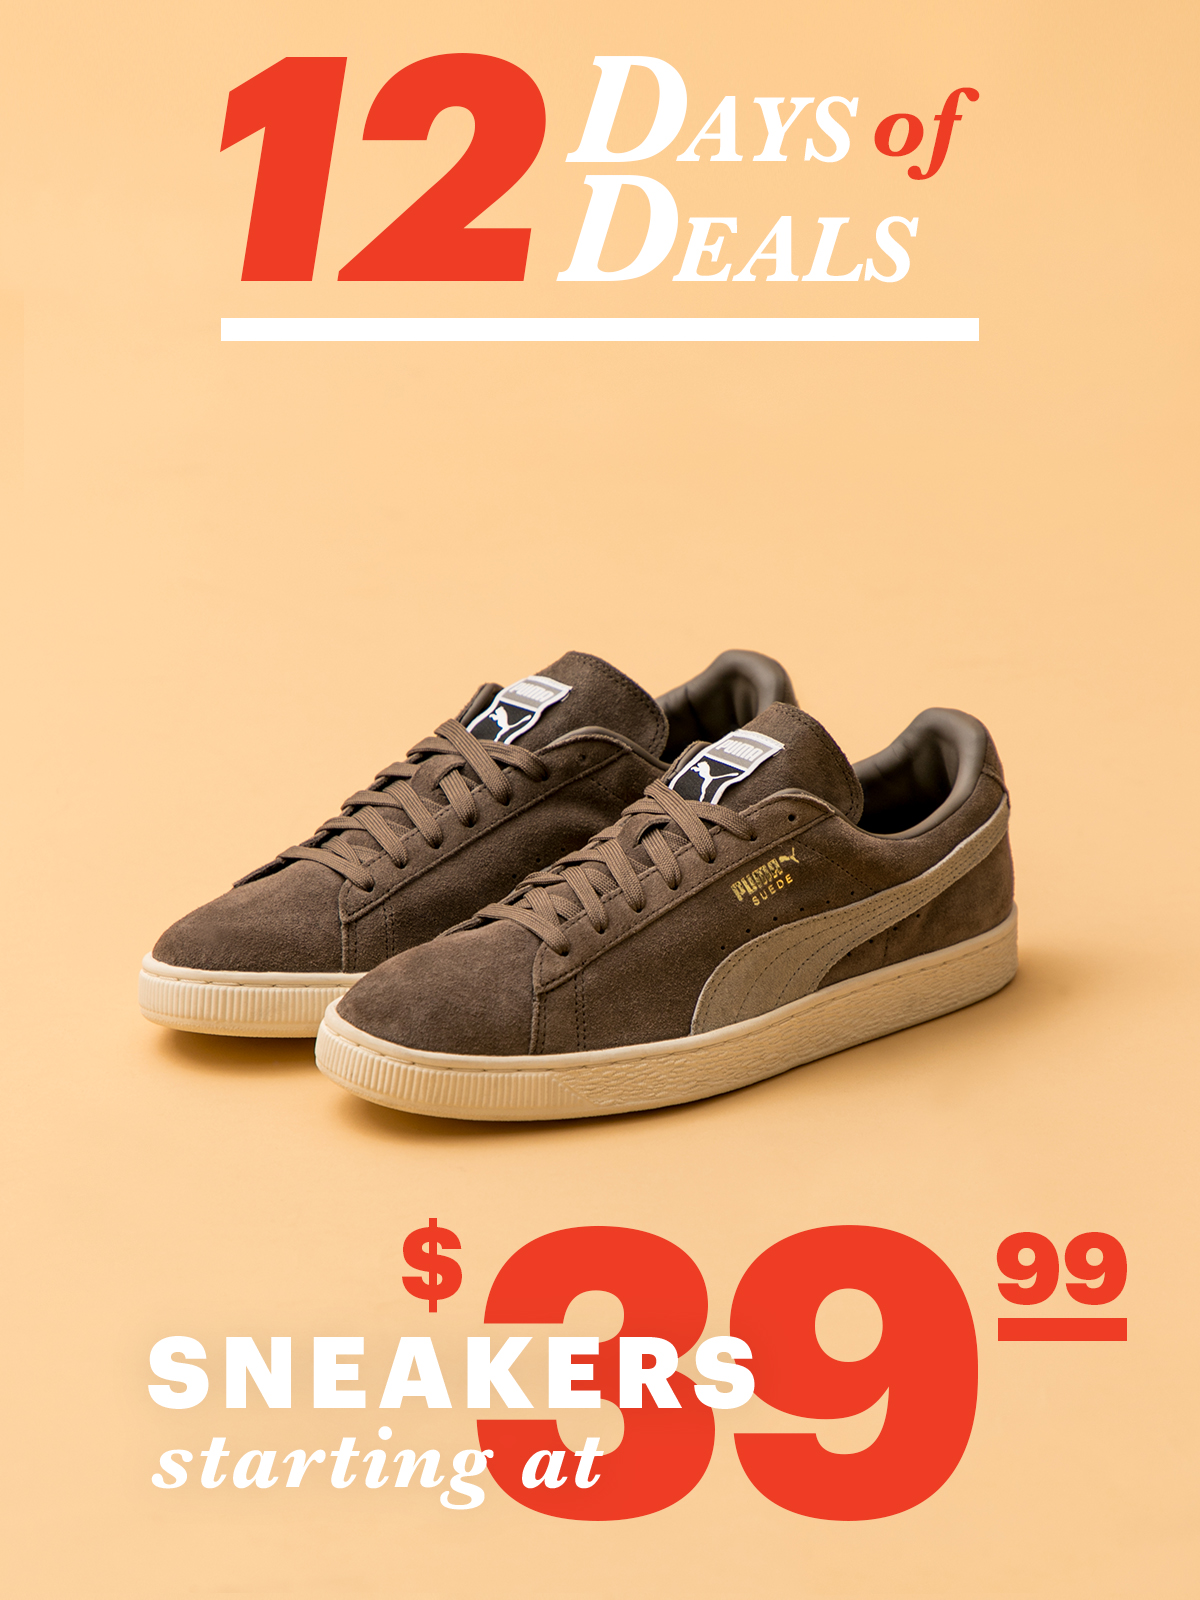 12 Days Of Deals: Day 8 Sneakers Starting at $39.99